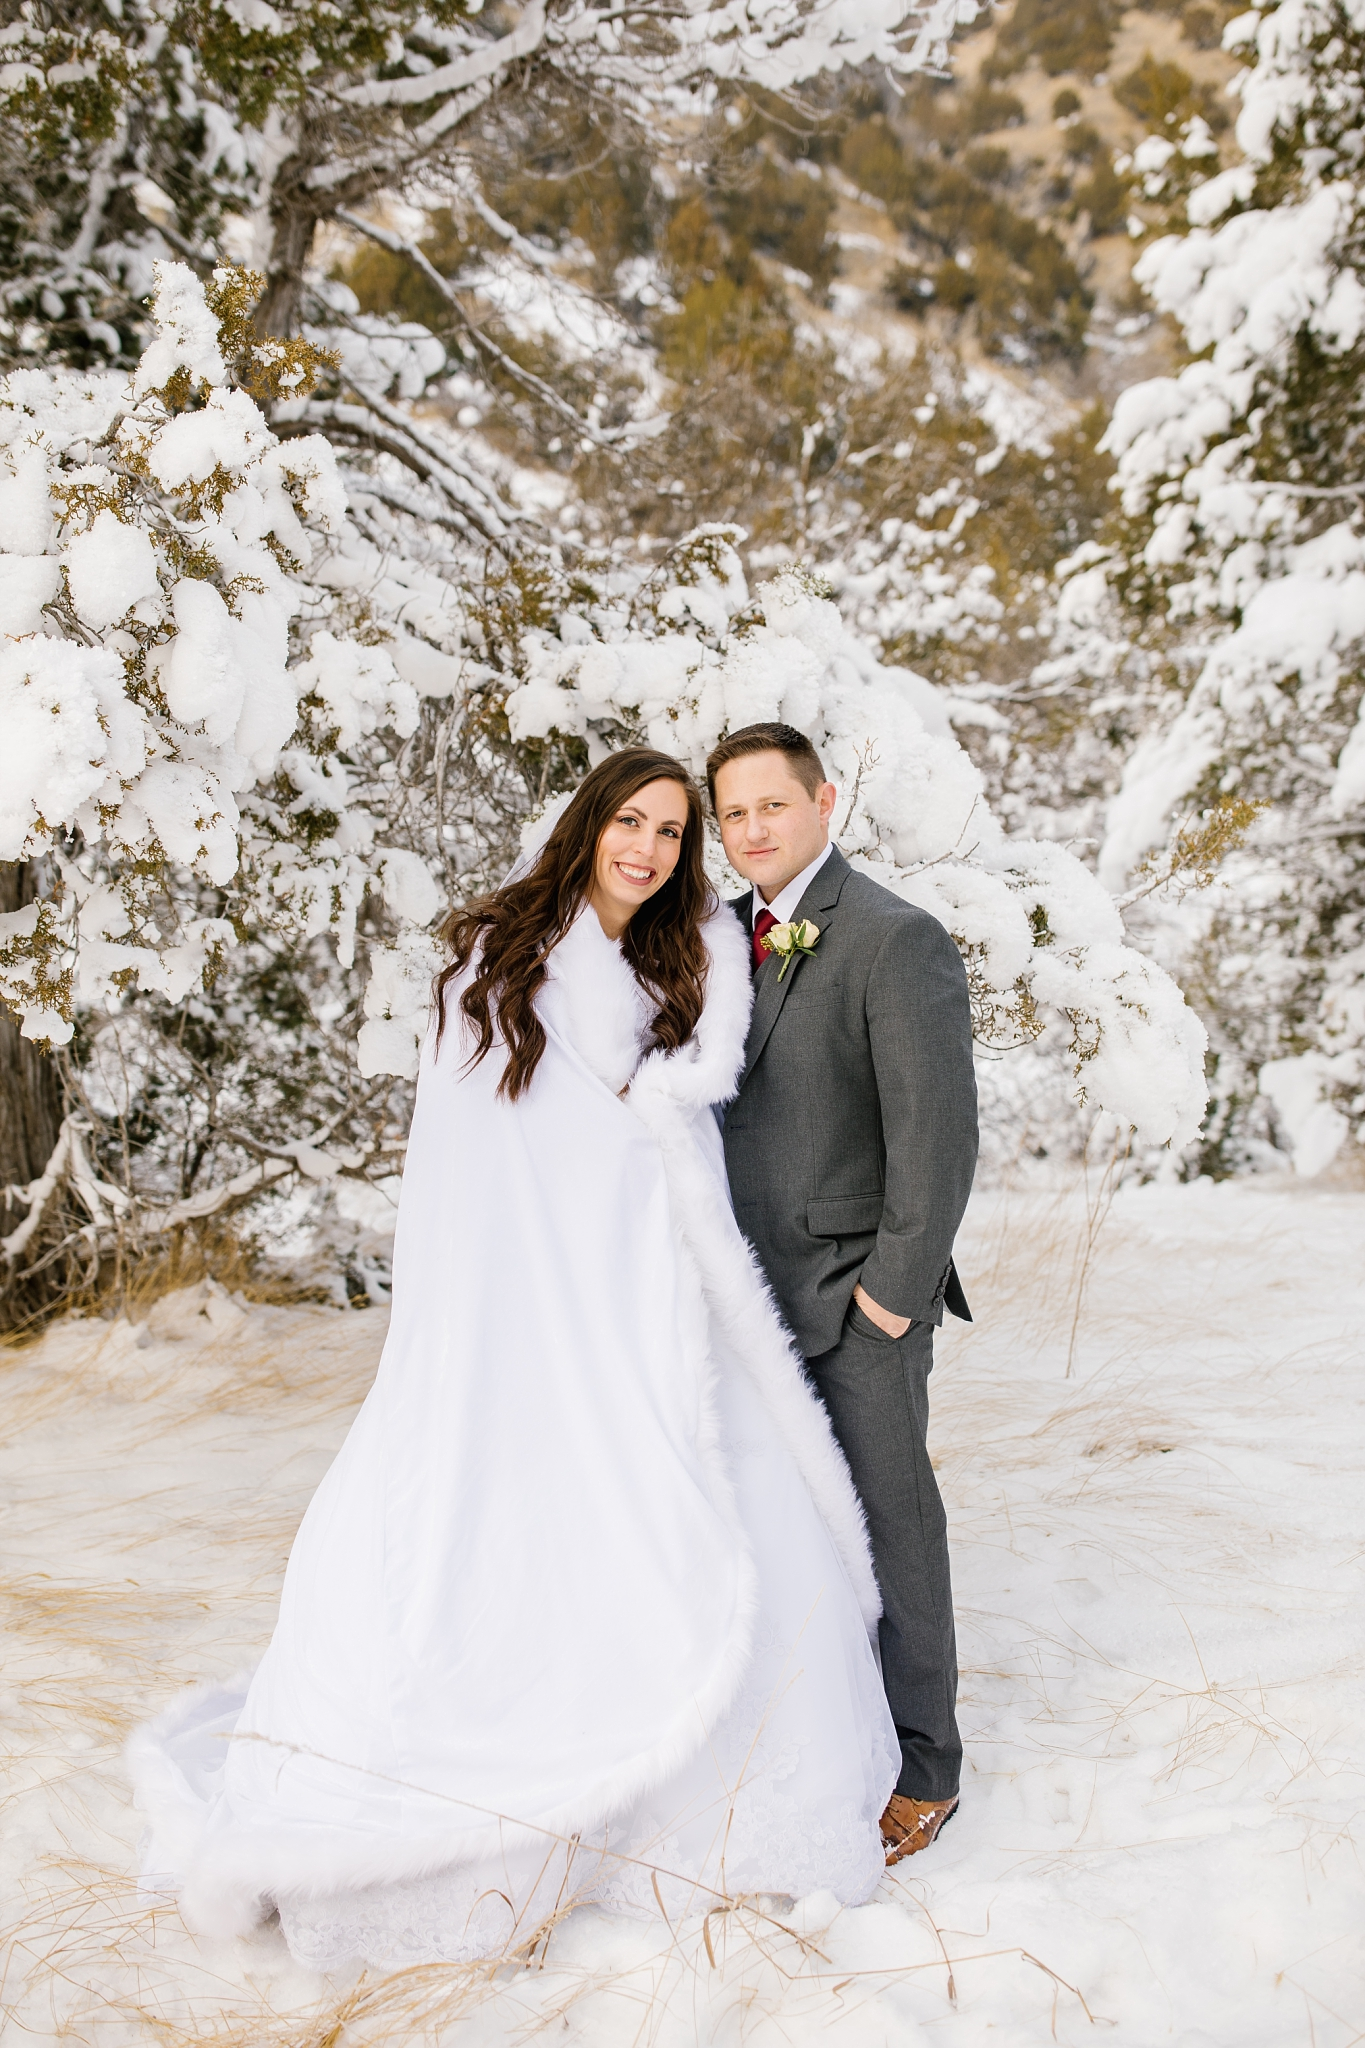 SSBridals-78_Lizzie-B-Imagery-Utah-Wedding-Photographer-Logan-Temple-Logan-Canyon-Mountain-Horse-Session.jpg